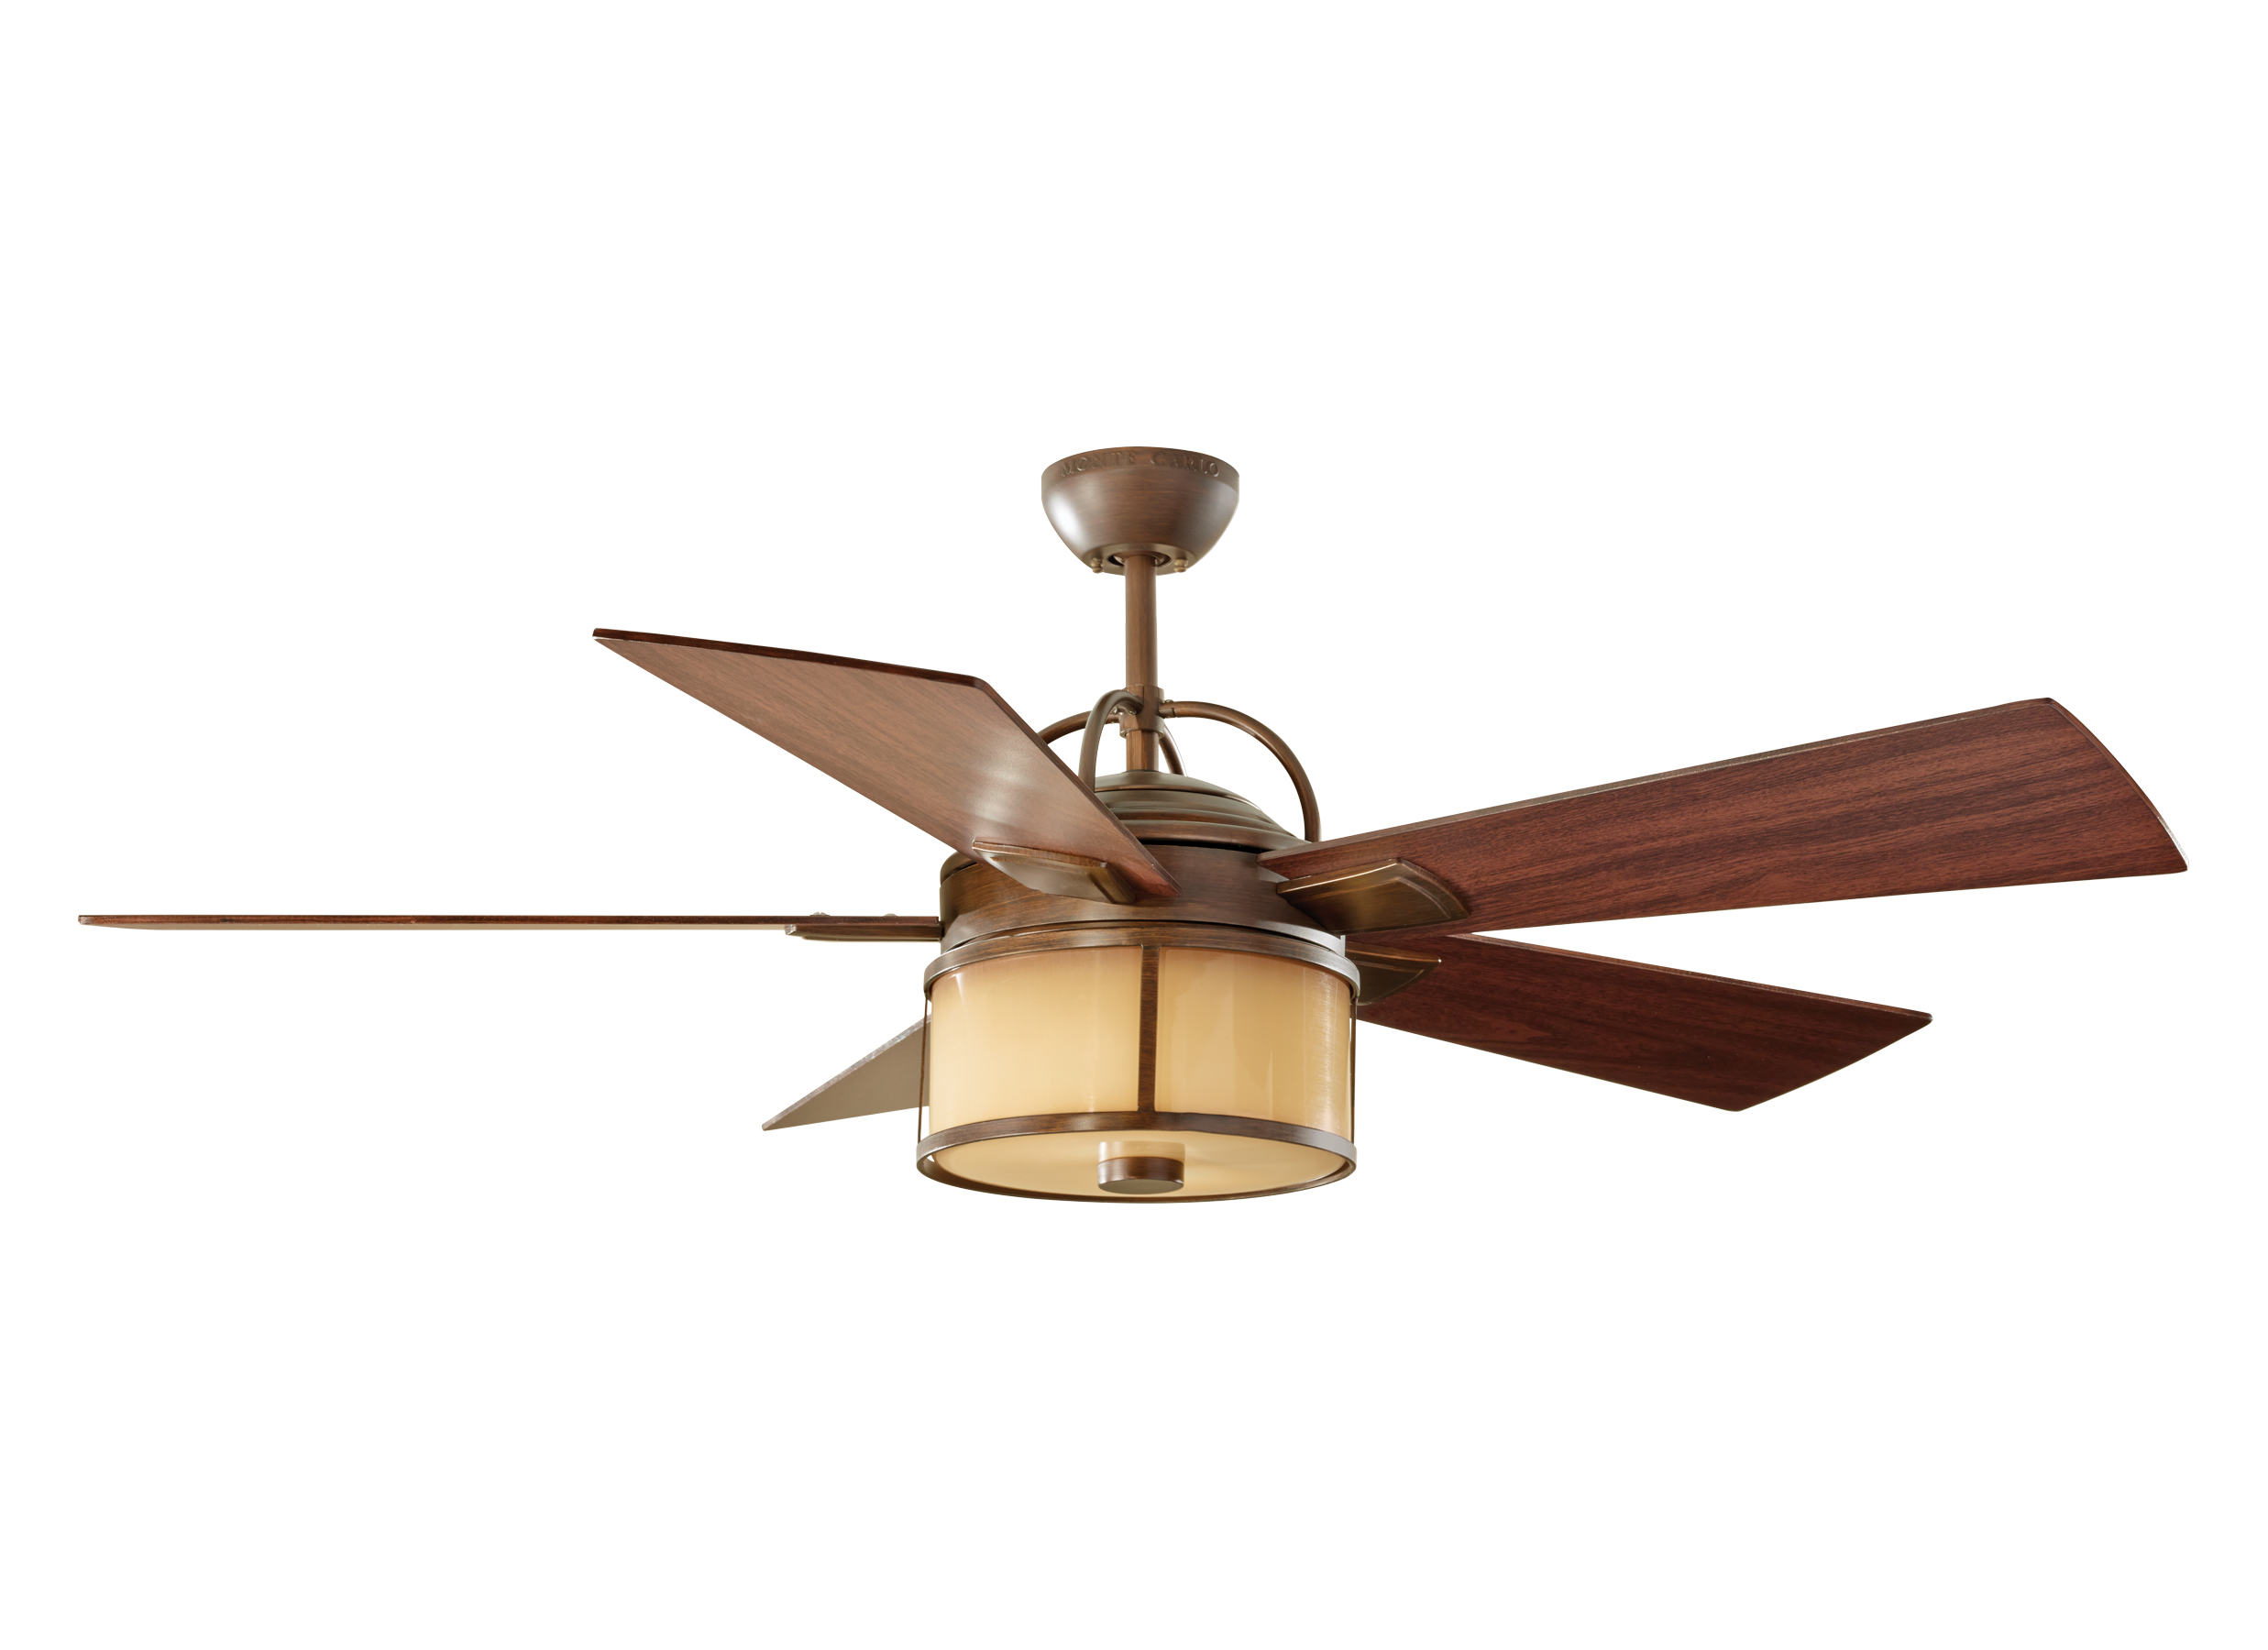 bronze co ceiling kit low in fan shown matthews ceilings metal no cage for light dual safety spo with products dagny none textured todaysfans